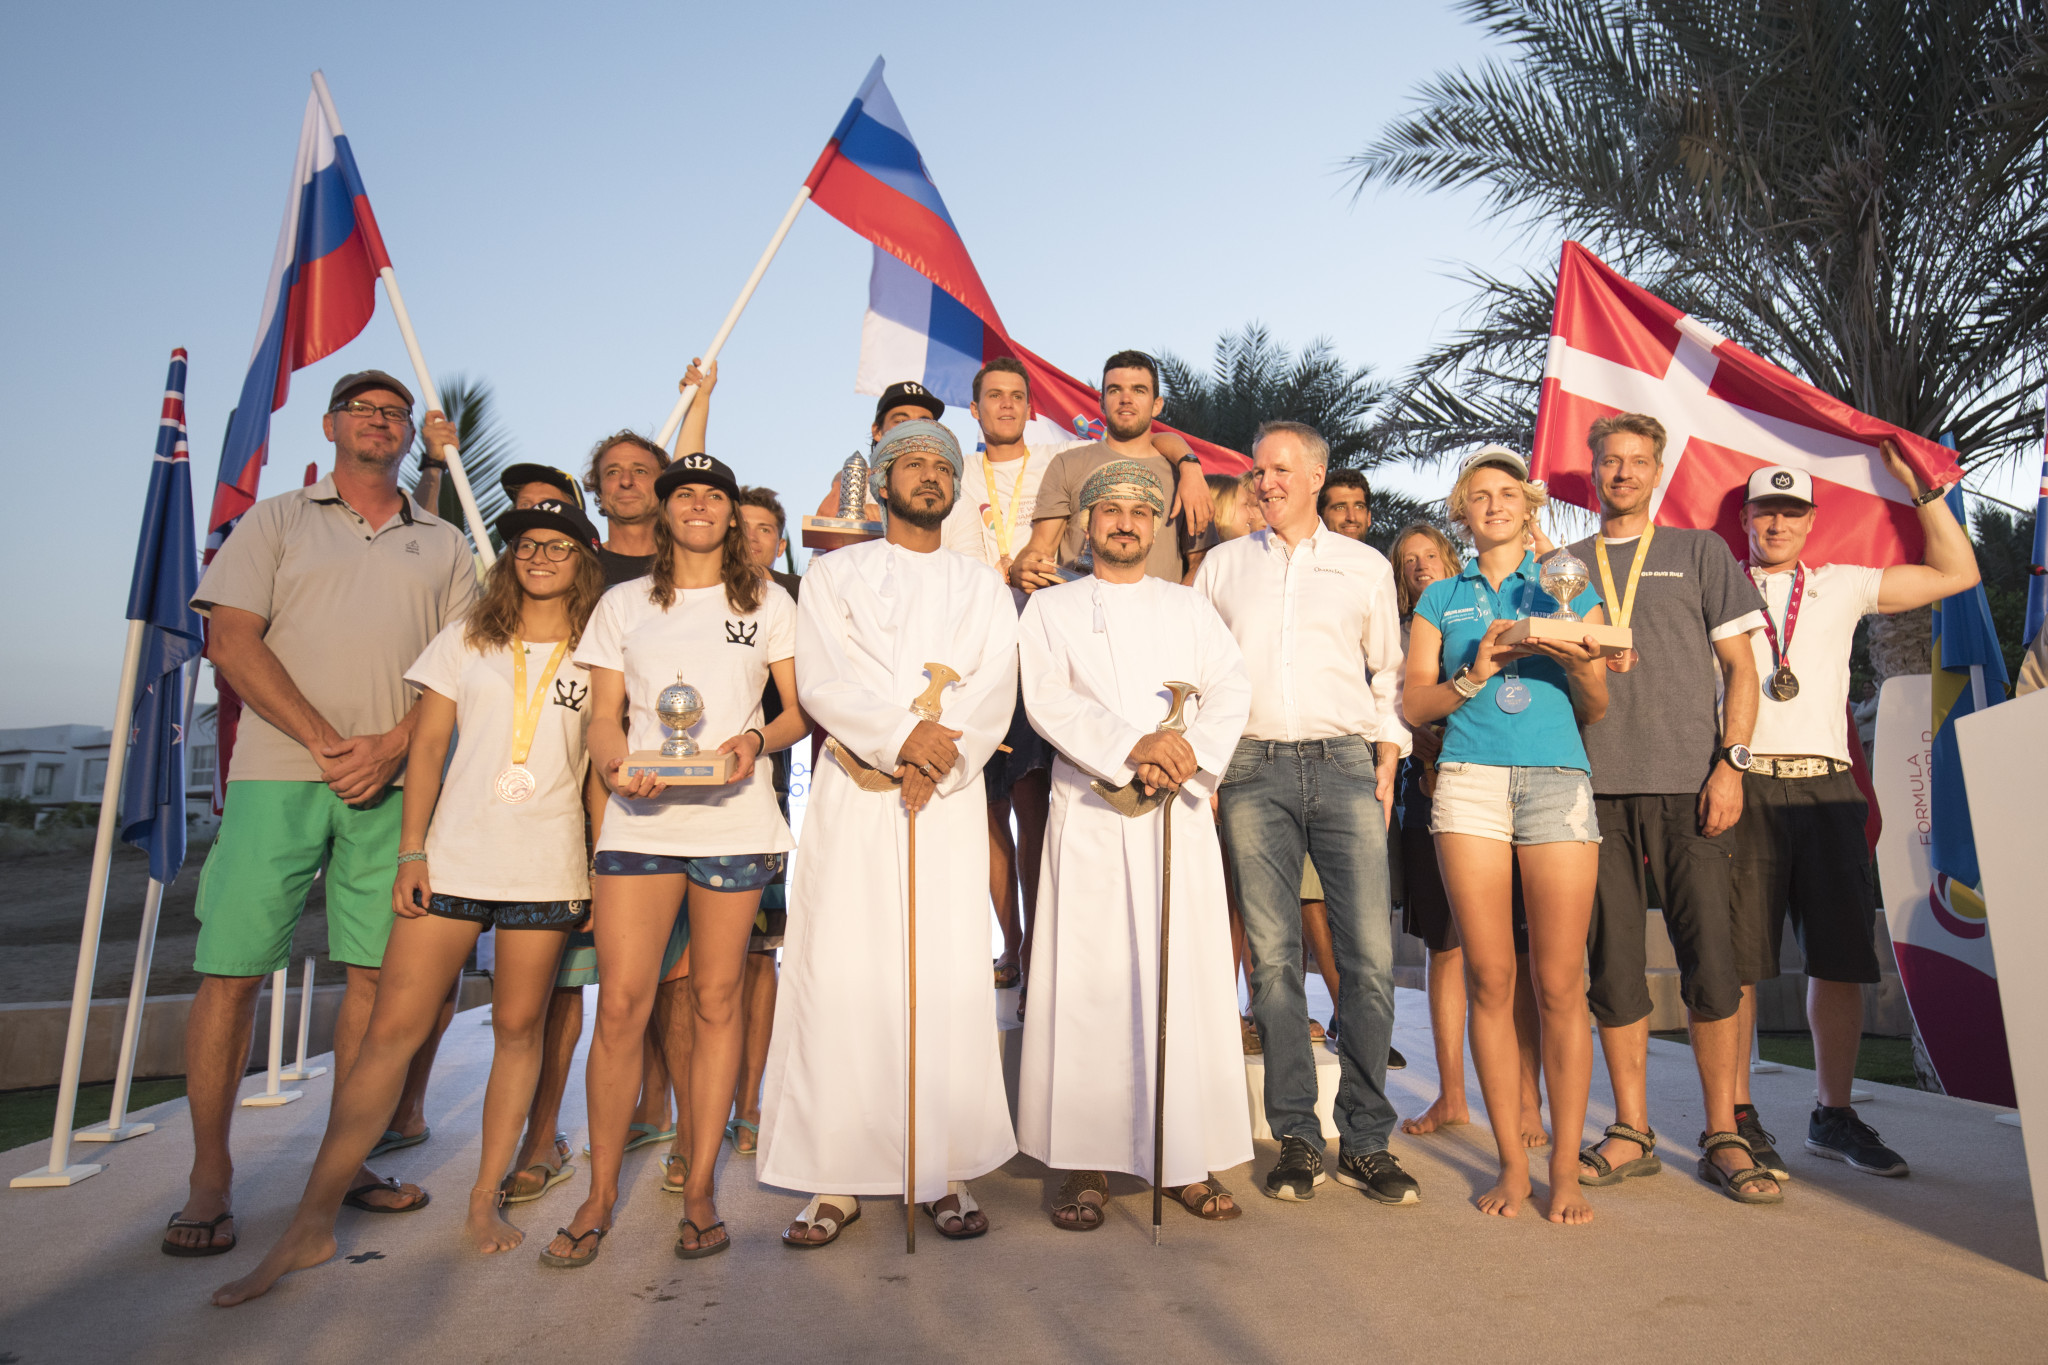 Riders from 22 different countries and six continents came to the event in Oman ©IKA Formula Kite World Championship